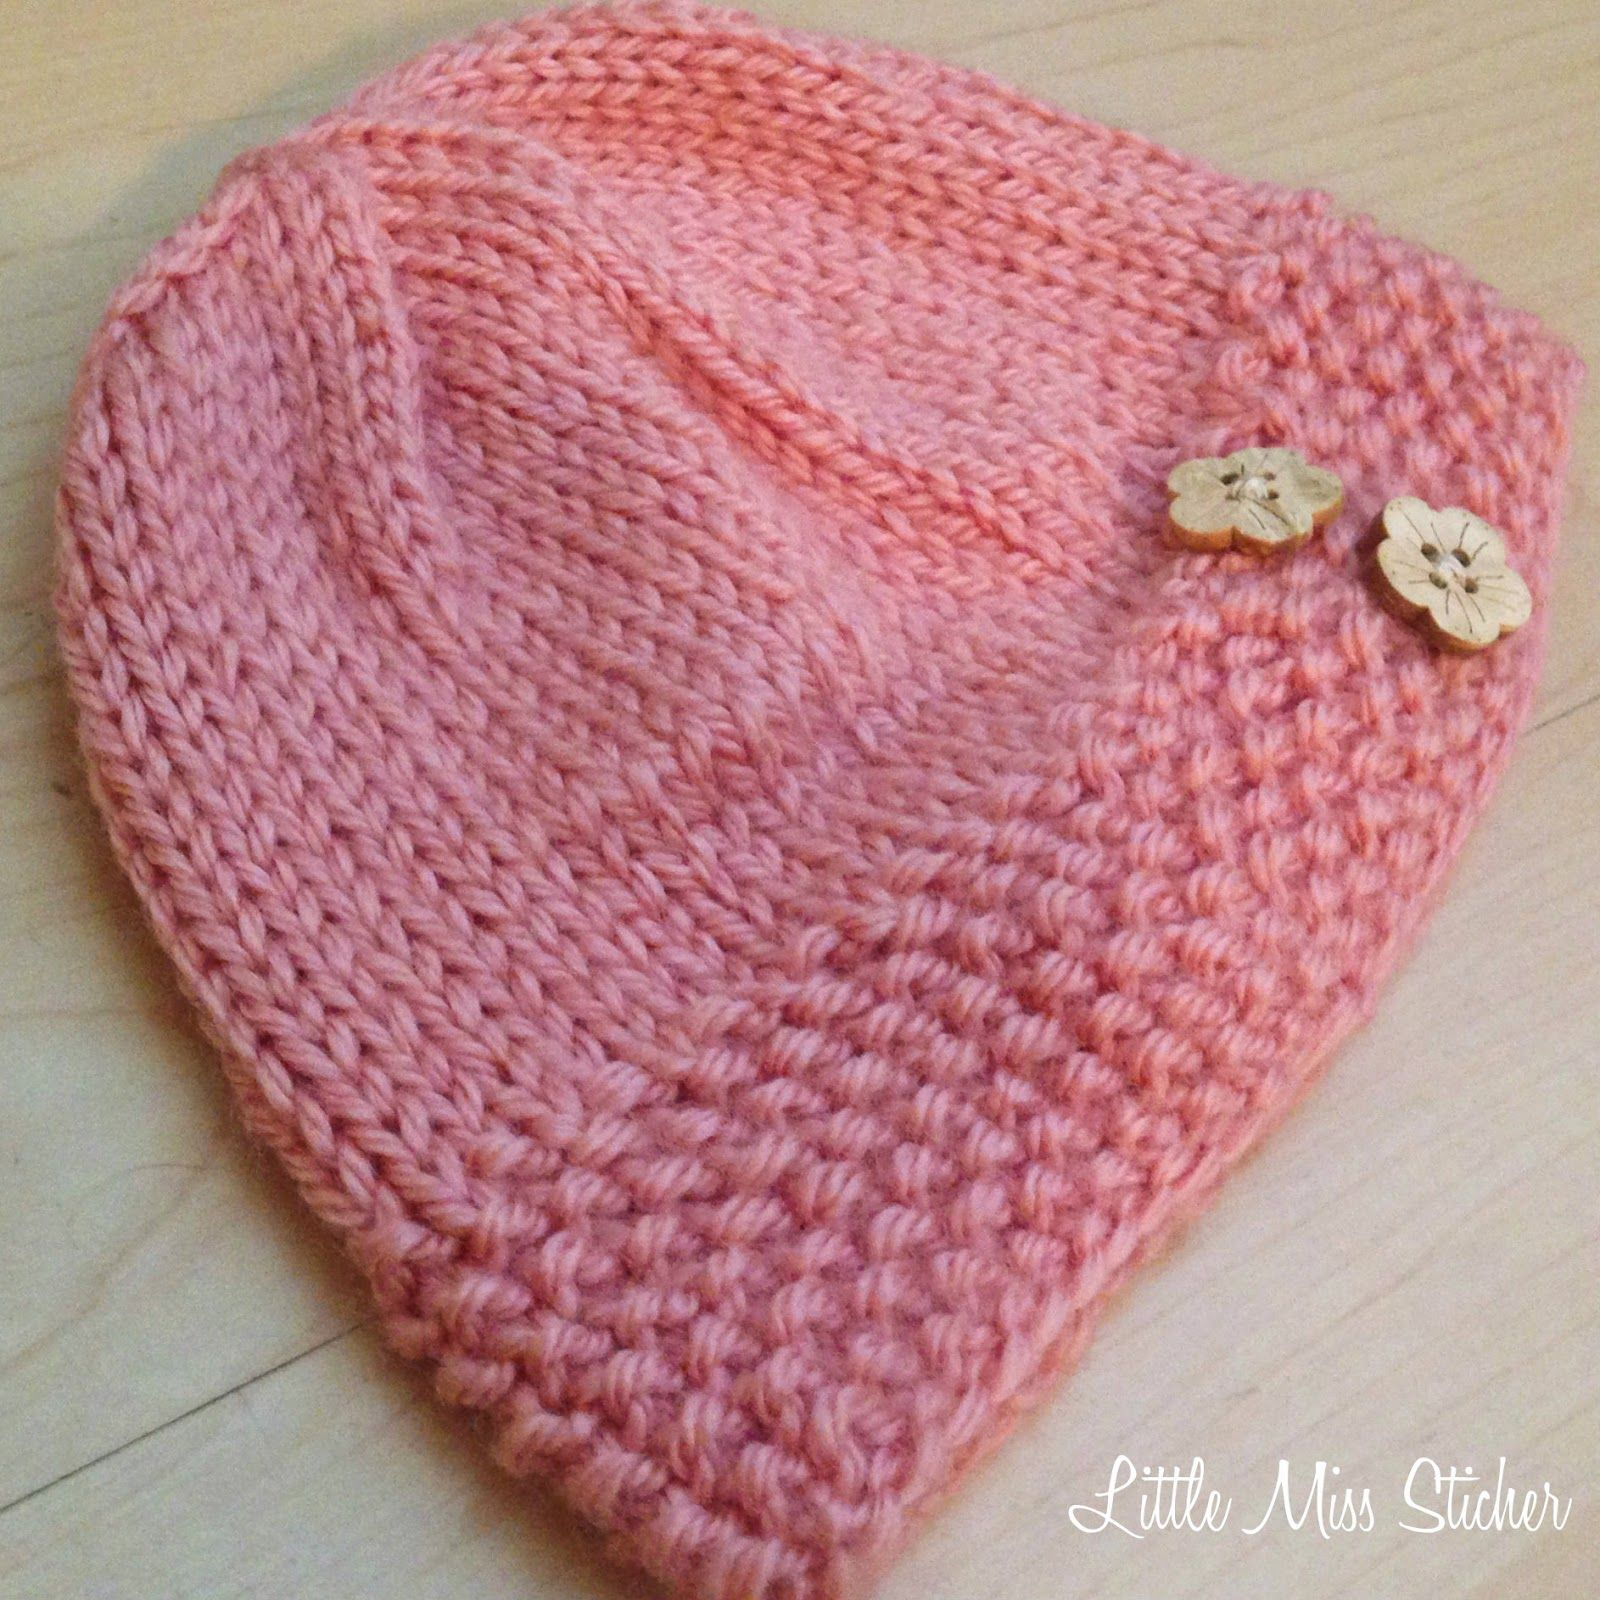 Little Miss Stitcher: Bitty Beanie Free Knit Pattern | knitting ...